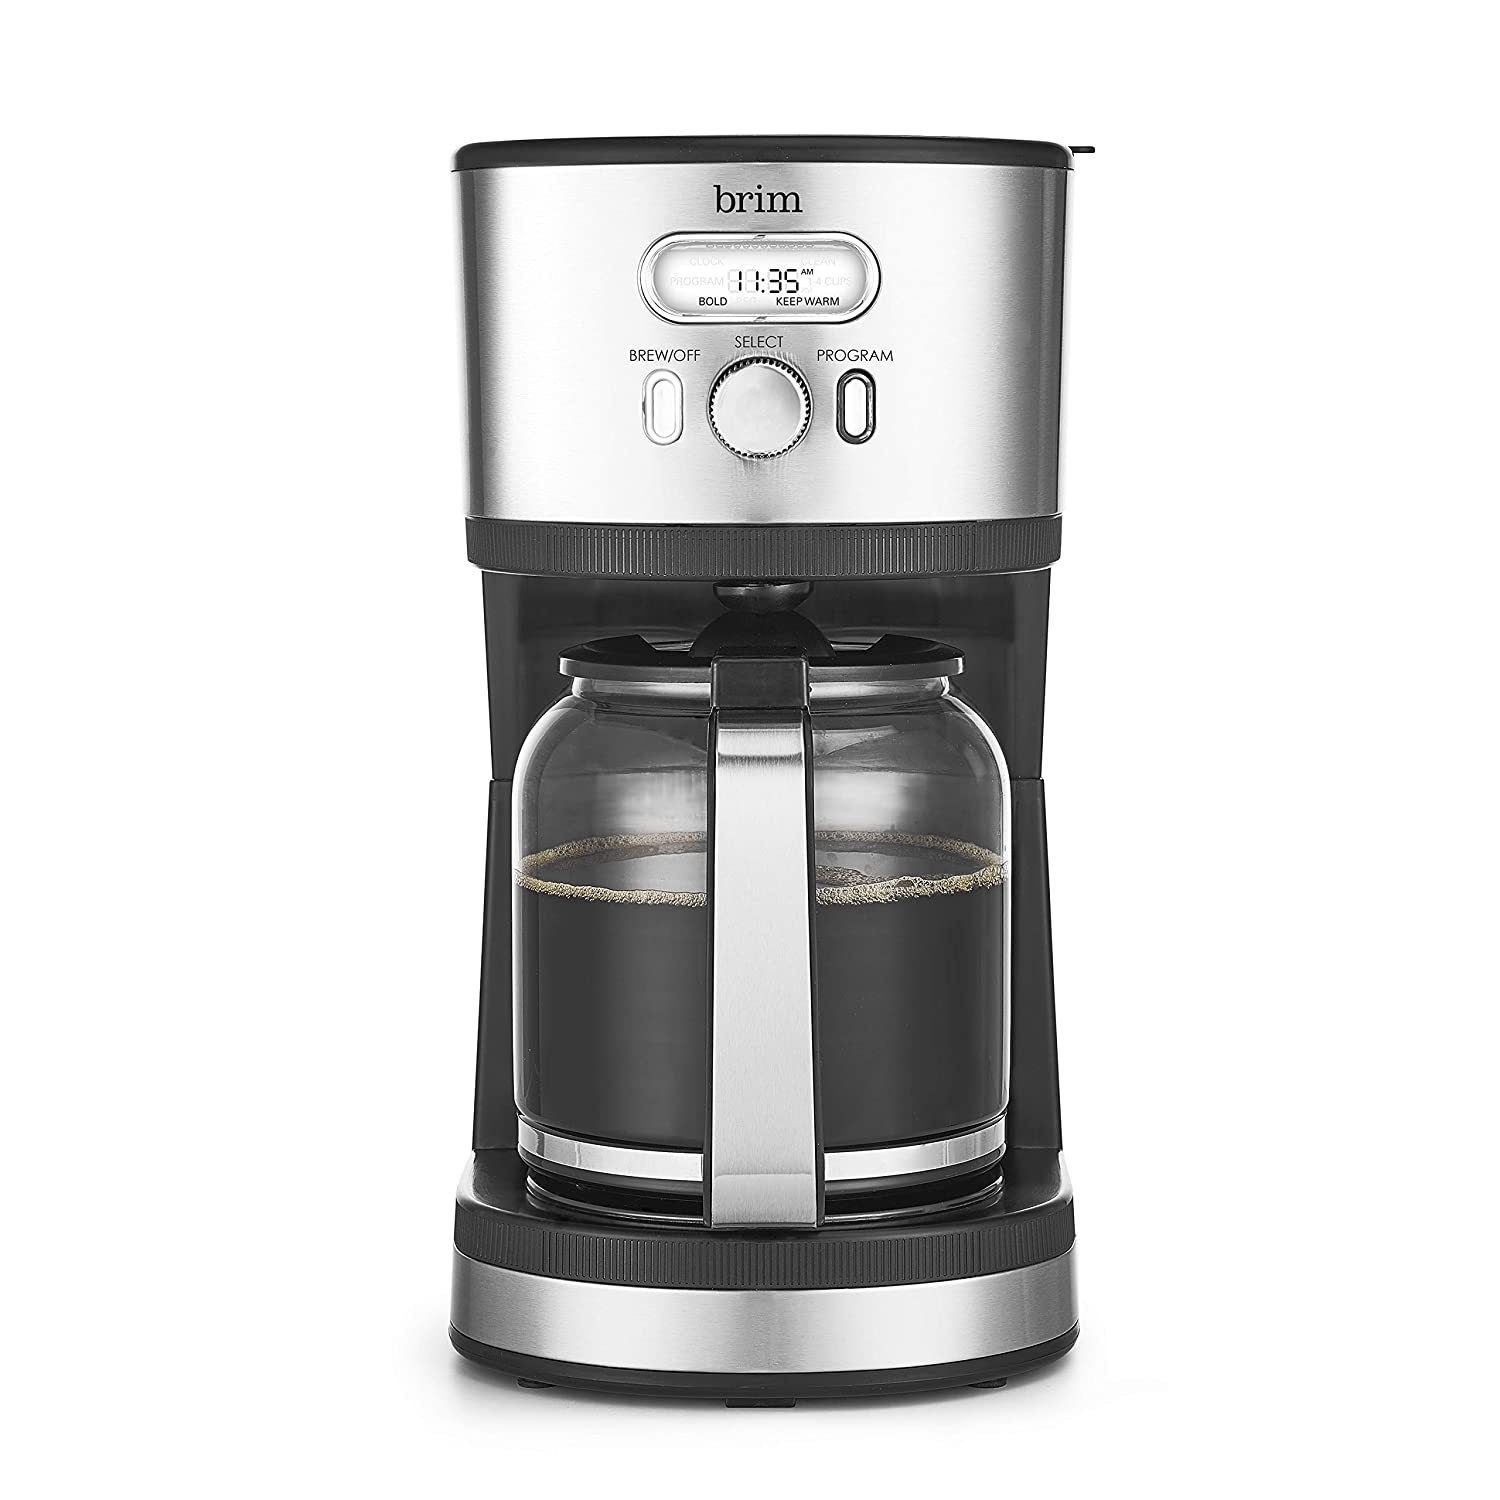 Brim 50021 Coffee Maker Programmable 14 Cup Stainless Steel Coffeemaker